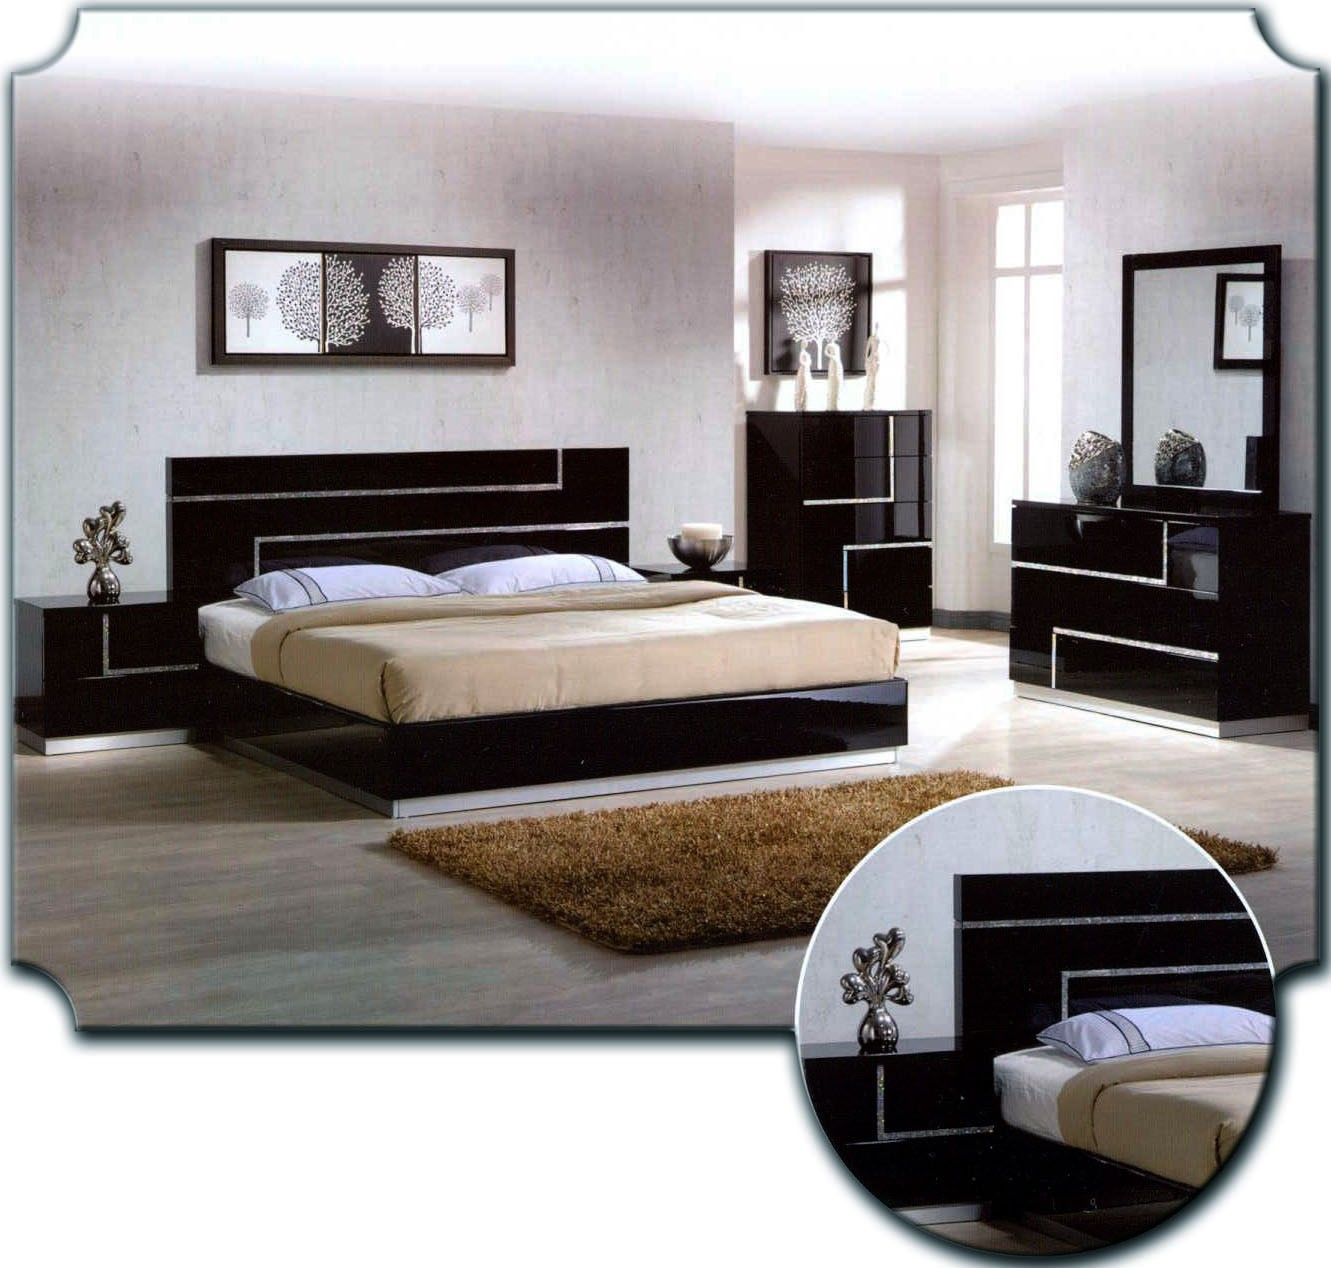 Bedroom Design Furniture Sets Photo - 3